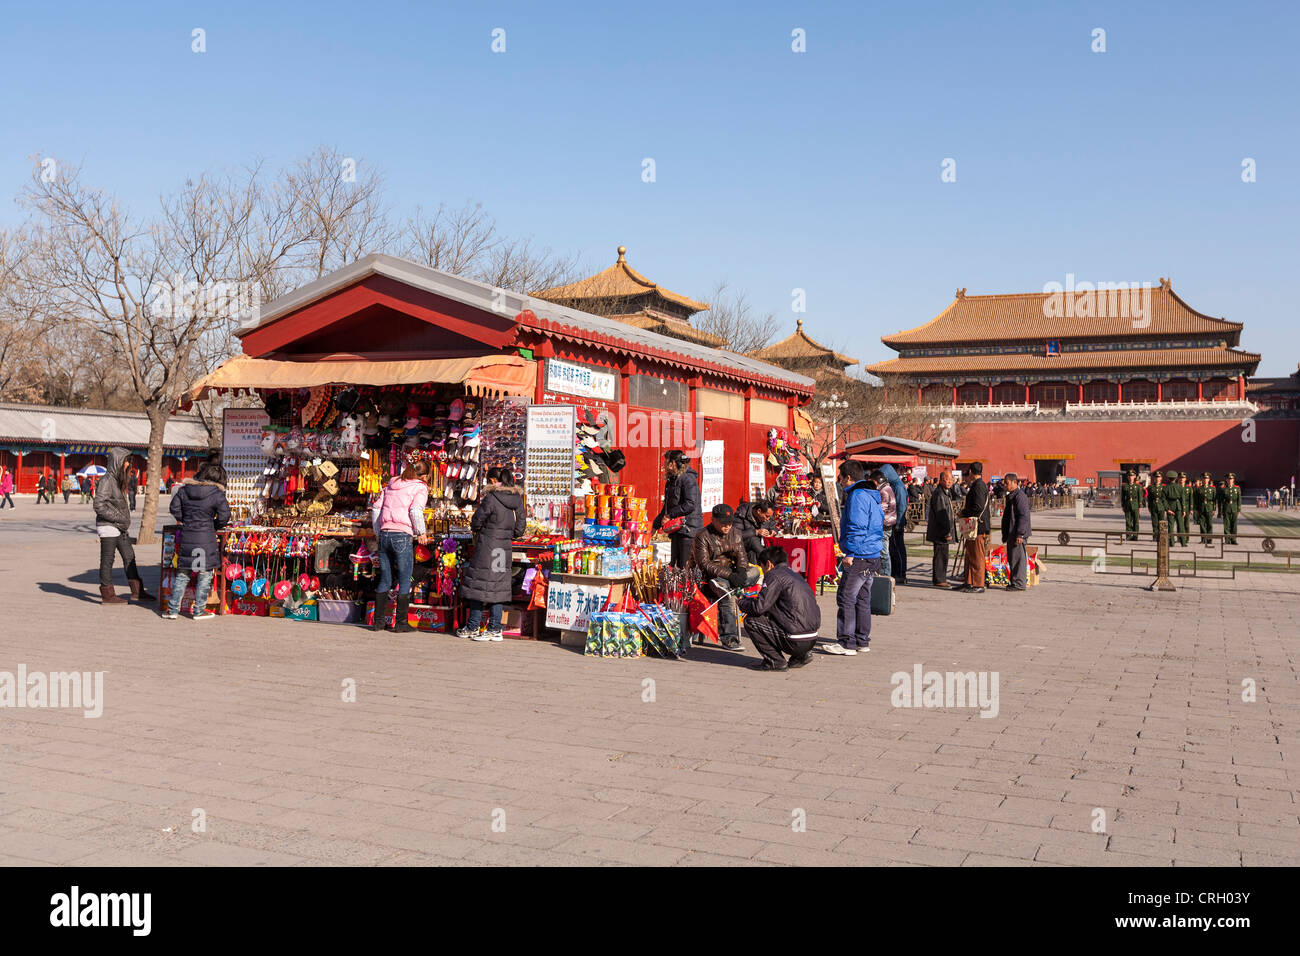 Tourists surround a souvenir stall at the Forbidden City, Beijing, China - Stock Image